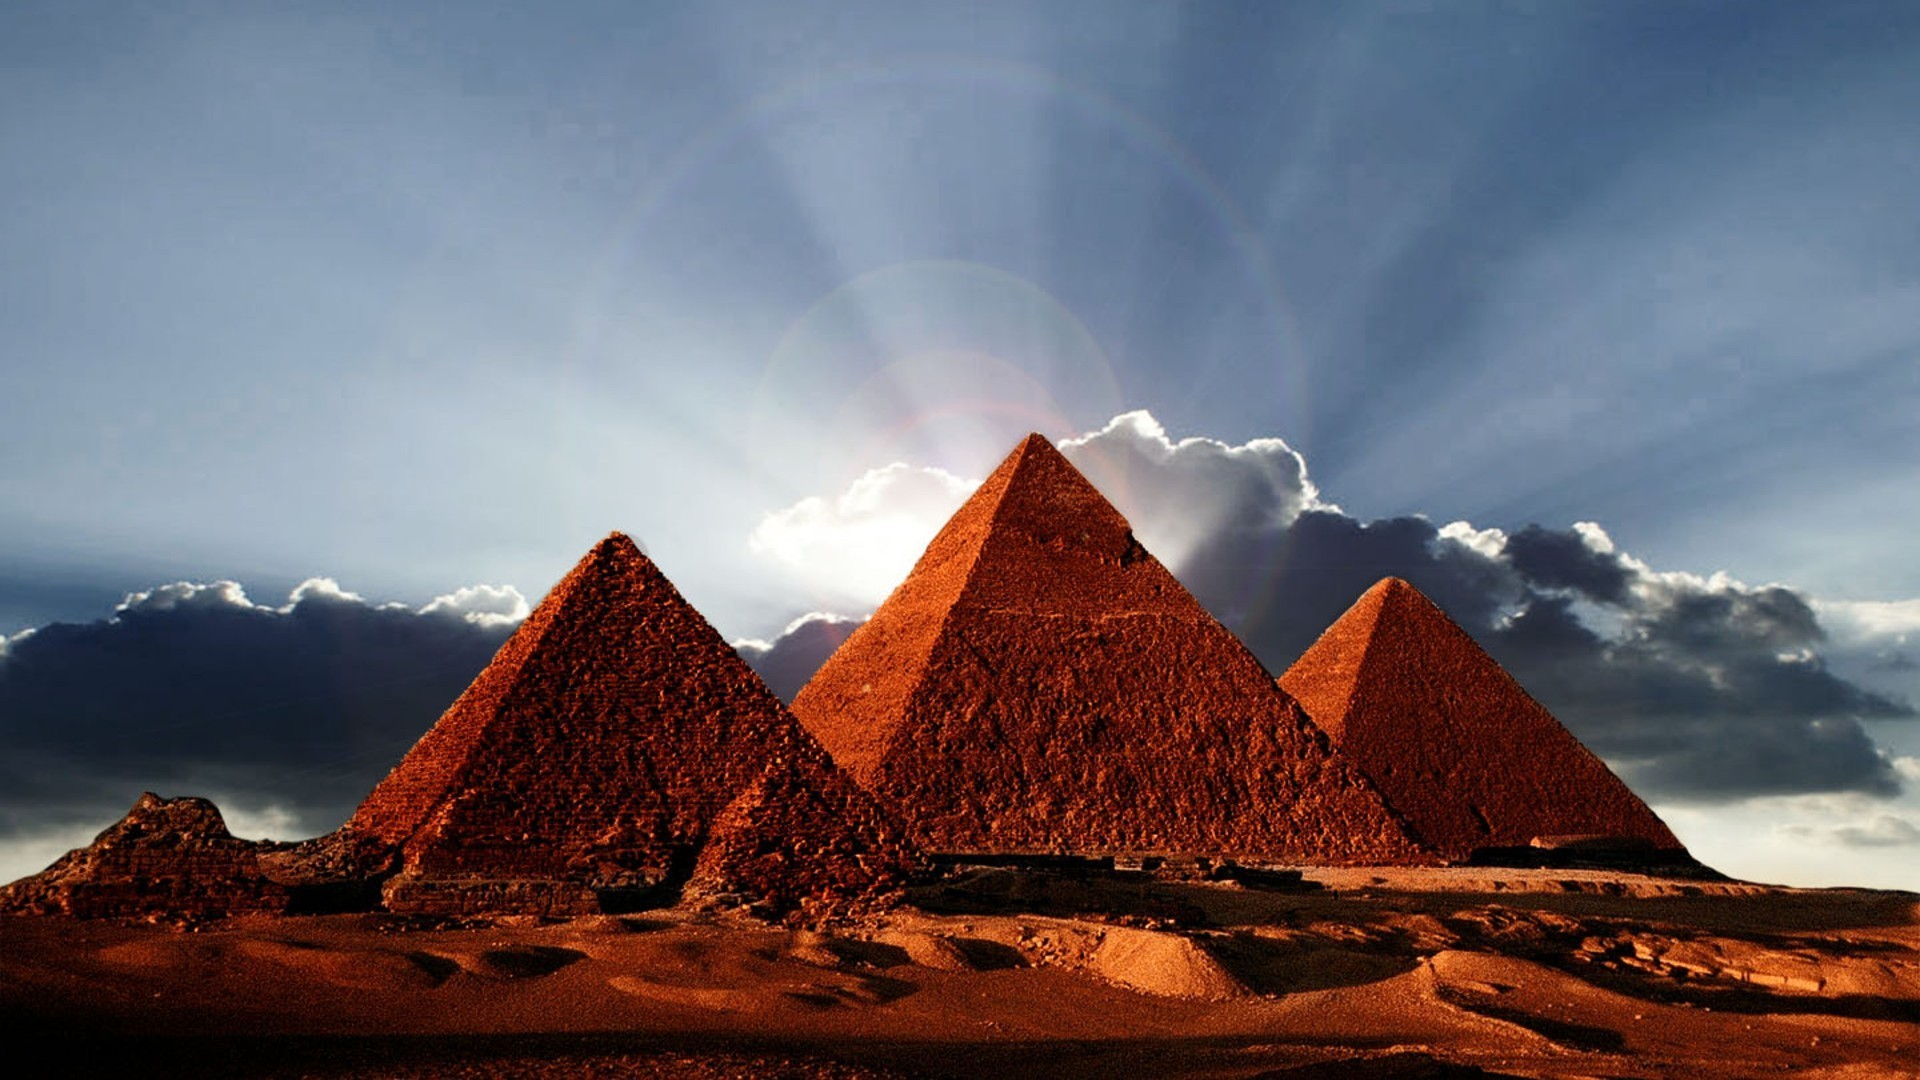 Res: 1920x1080, Pyramids of egypt wallpaper